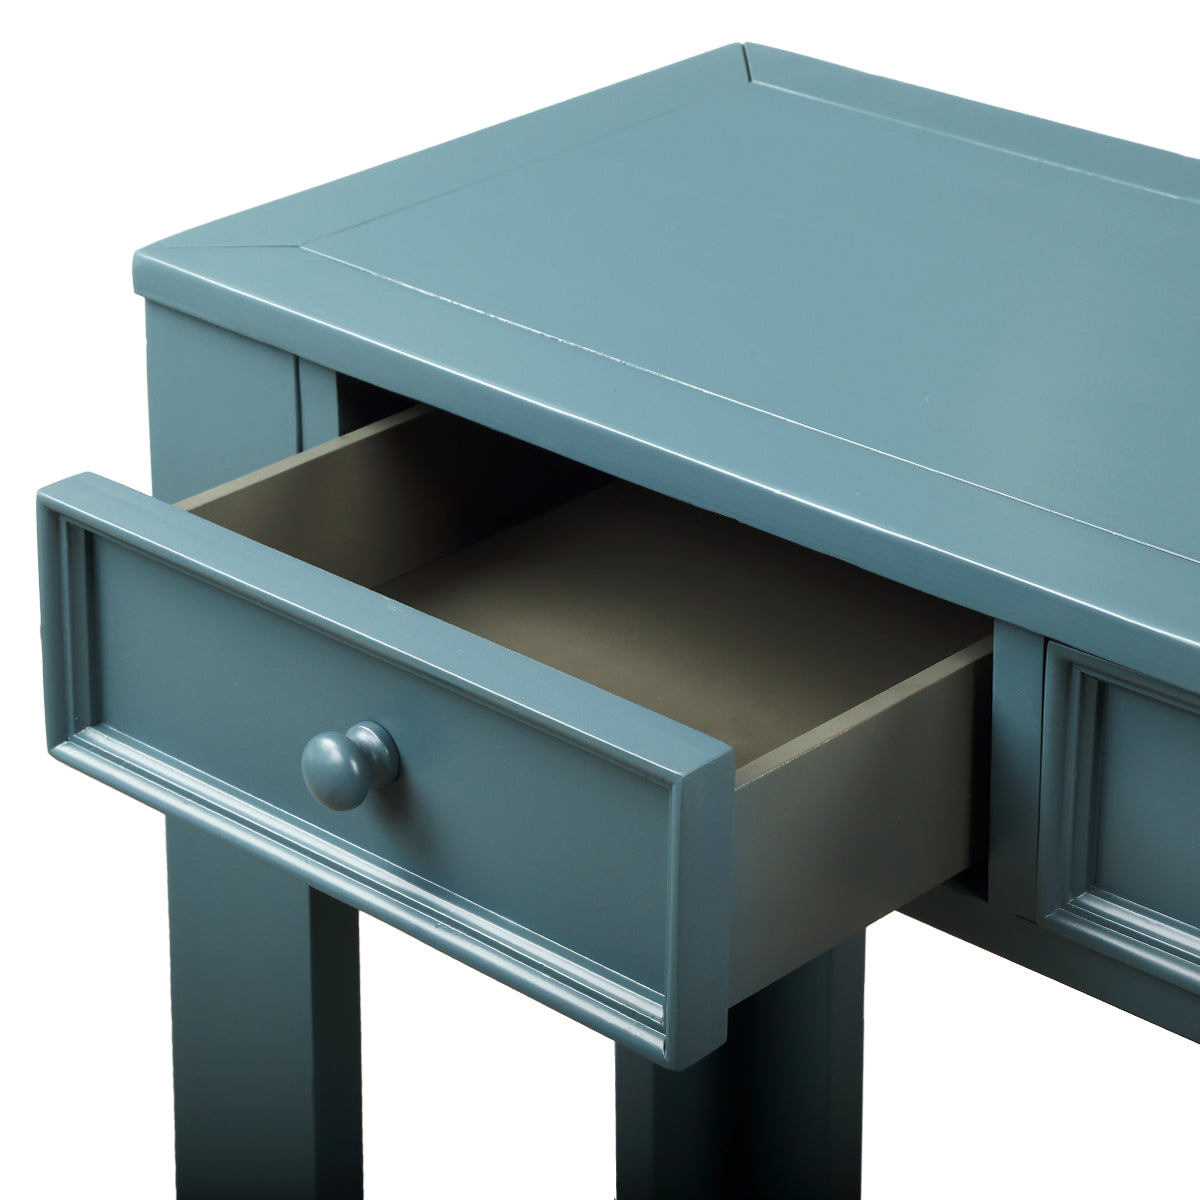 Cadet Blue Rectangular Console Table for Entryway Hallway Sofa Table with Storage Drawers and Bottom Shelf BH189615